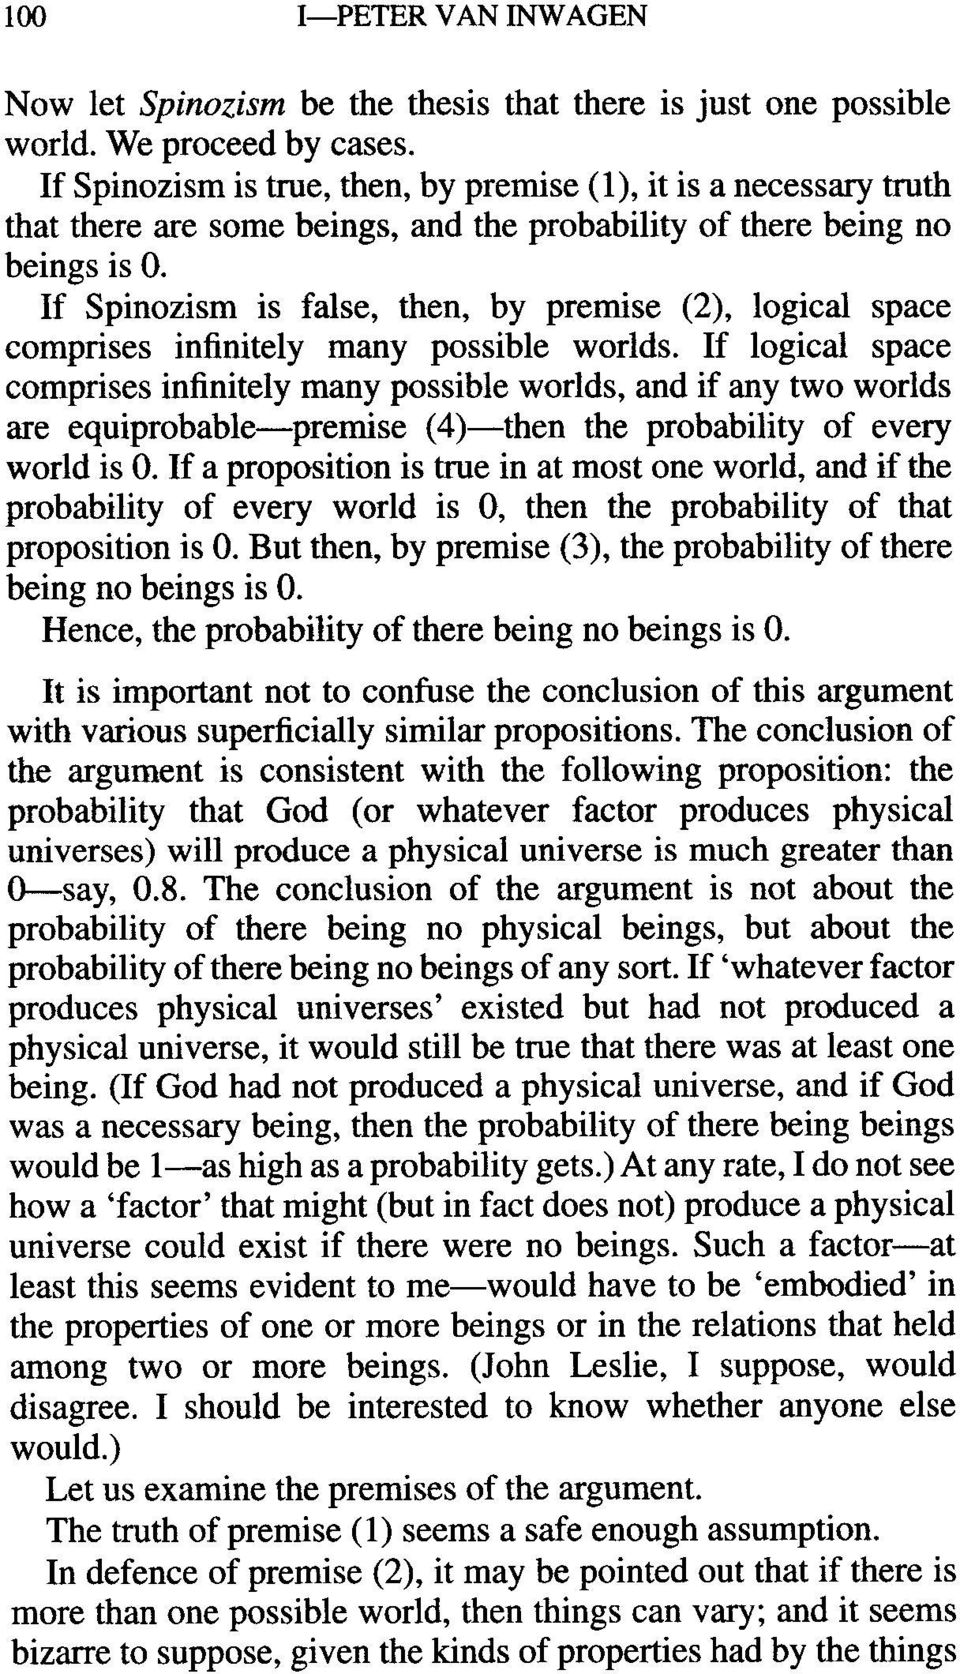 If Spinozism is false, then, by premise (2), logical space comprises infinitely many possible worlds.